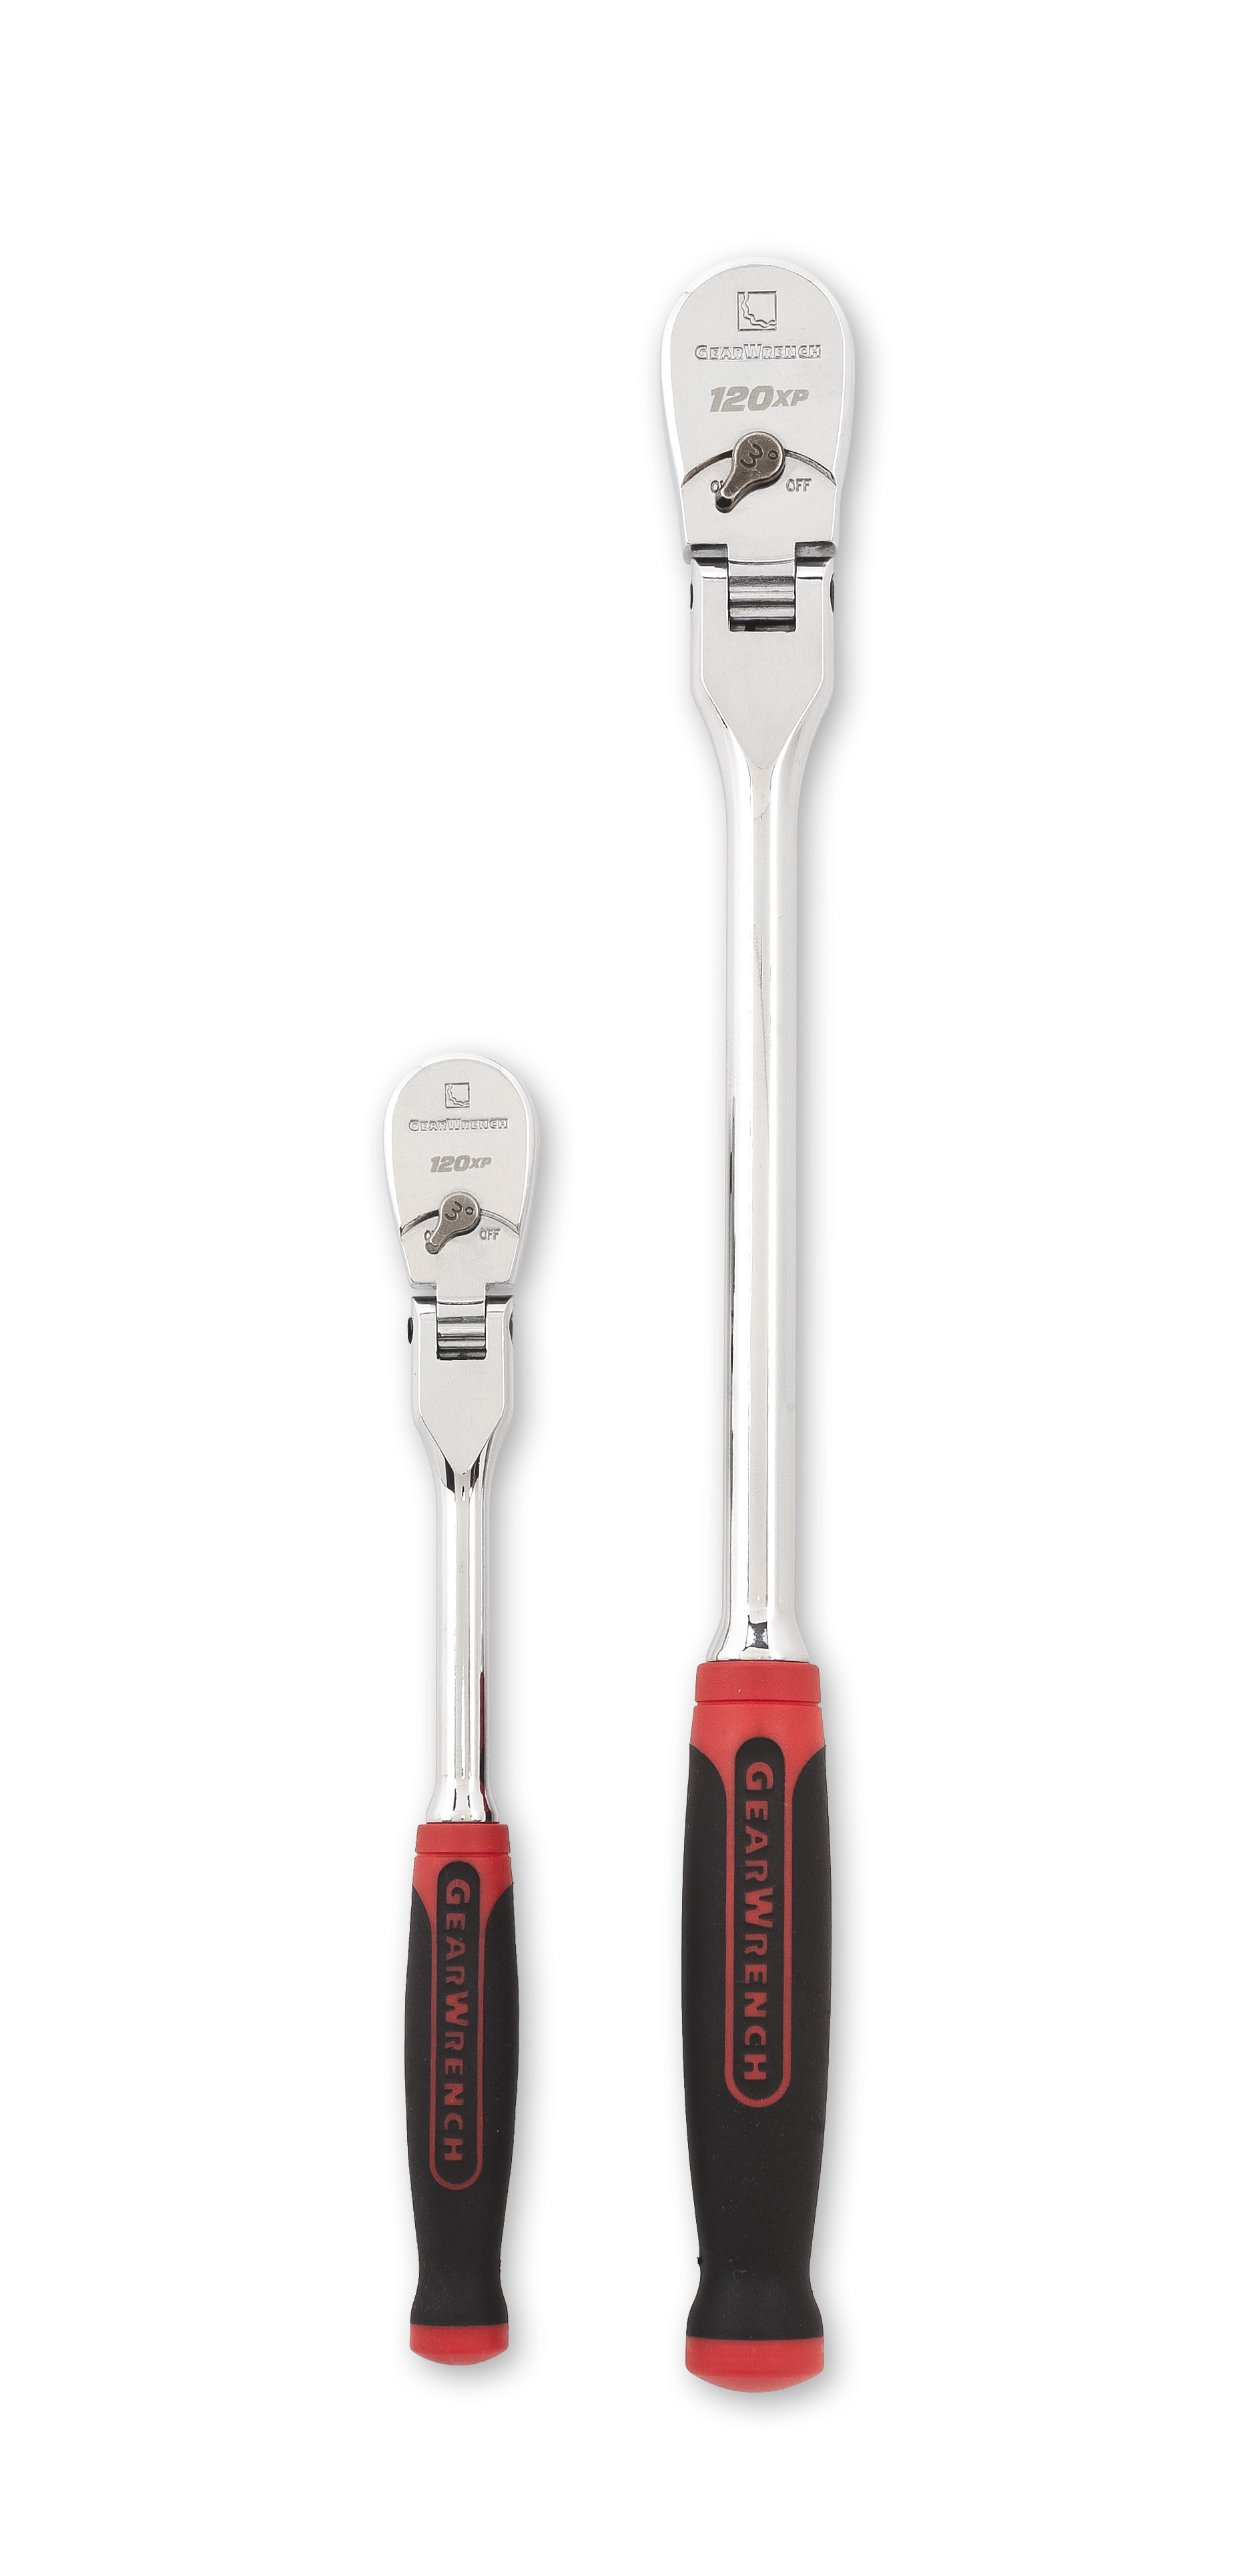 GEARWRENCH 2 Pc. 1/4'' & 3/8'' Drive 120XP Dual Material Flex Head Teardrop Ratchet Set - 81204P by GearWrench